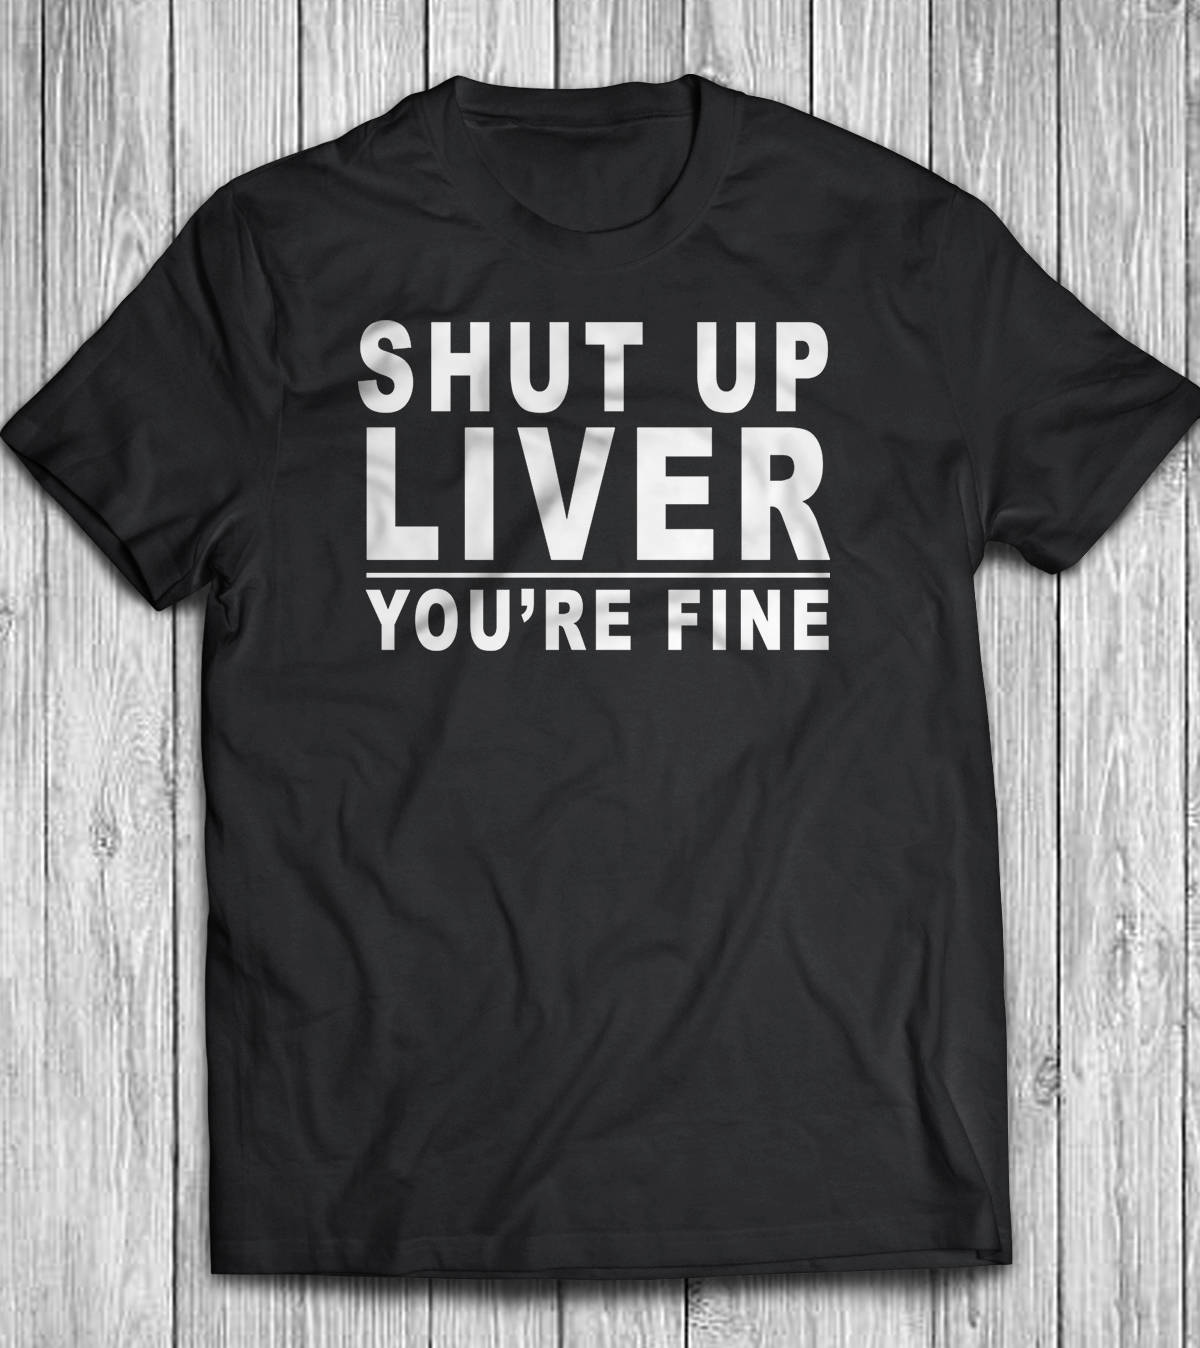 3ec494a8b62 Shut up liver you re fine tshirt funny beer alcohol